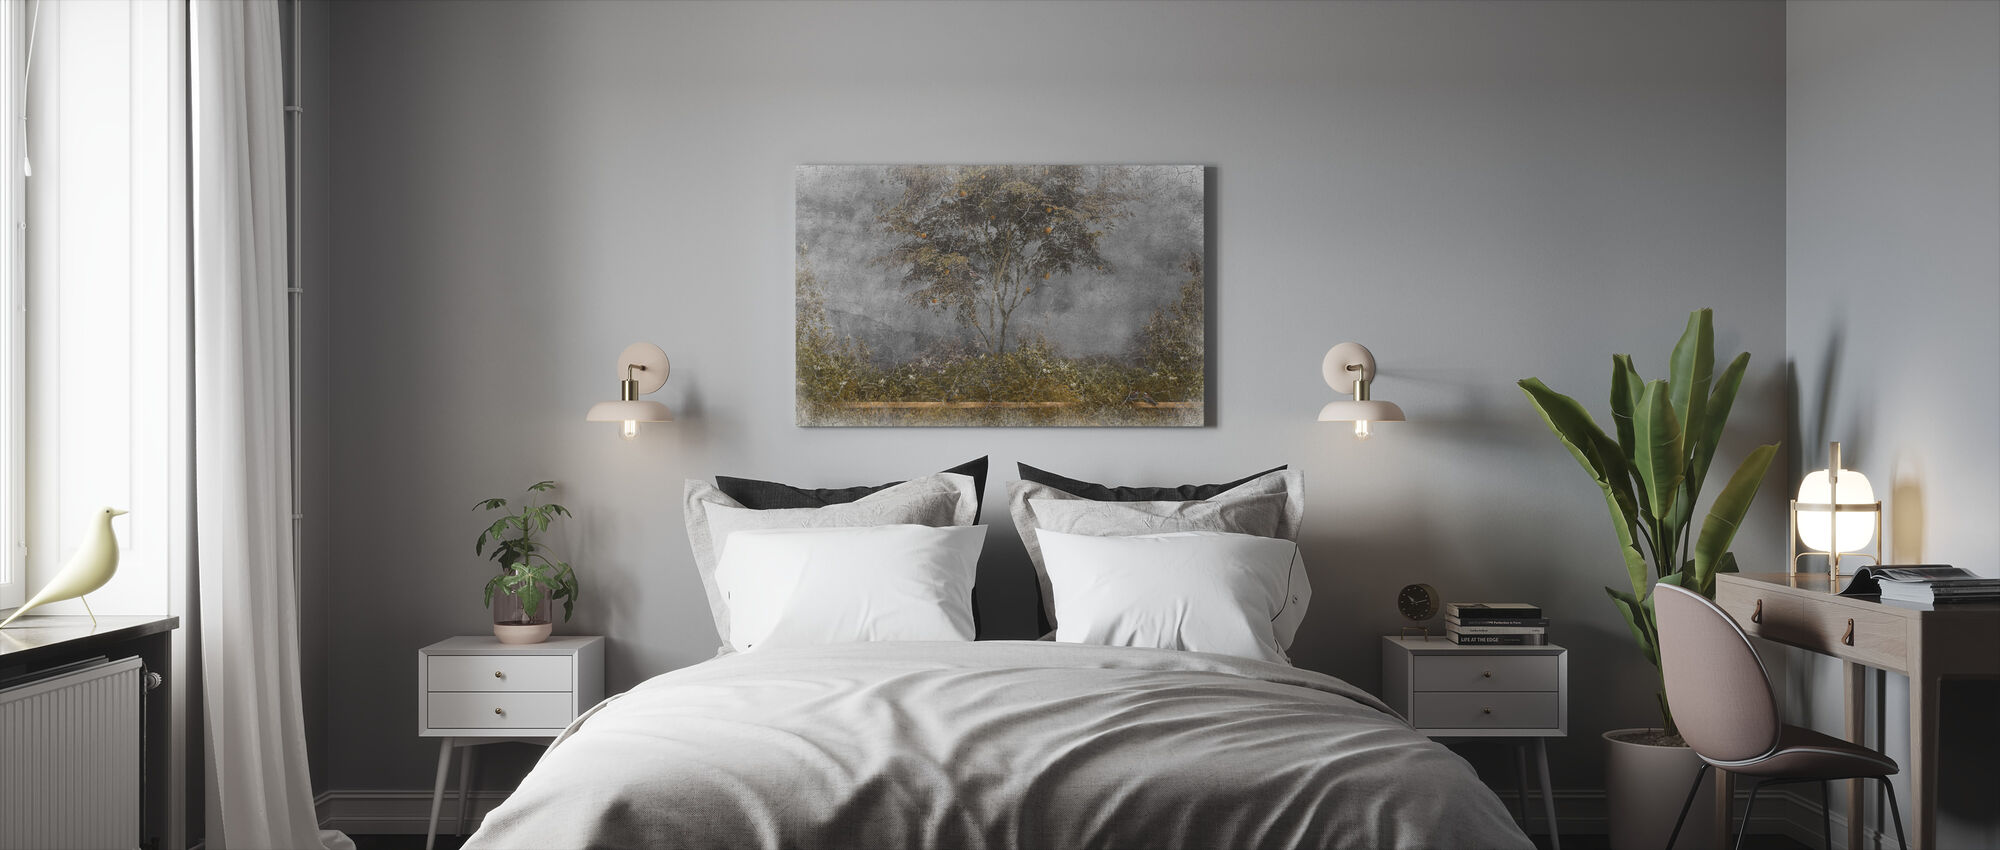 Old Frayed Painted Wall III - Canvas print - Bedroom